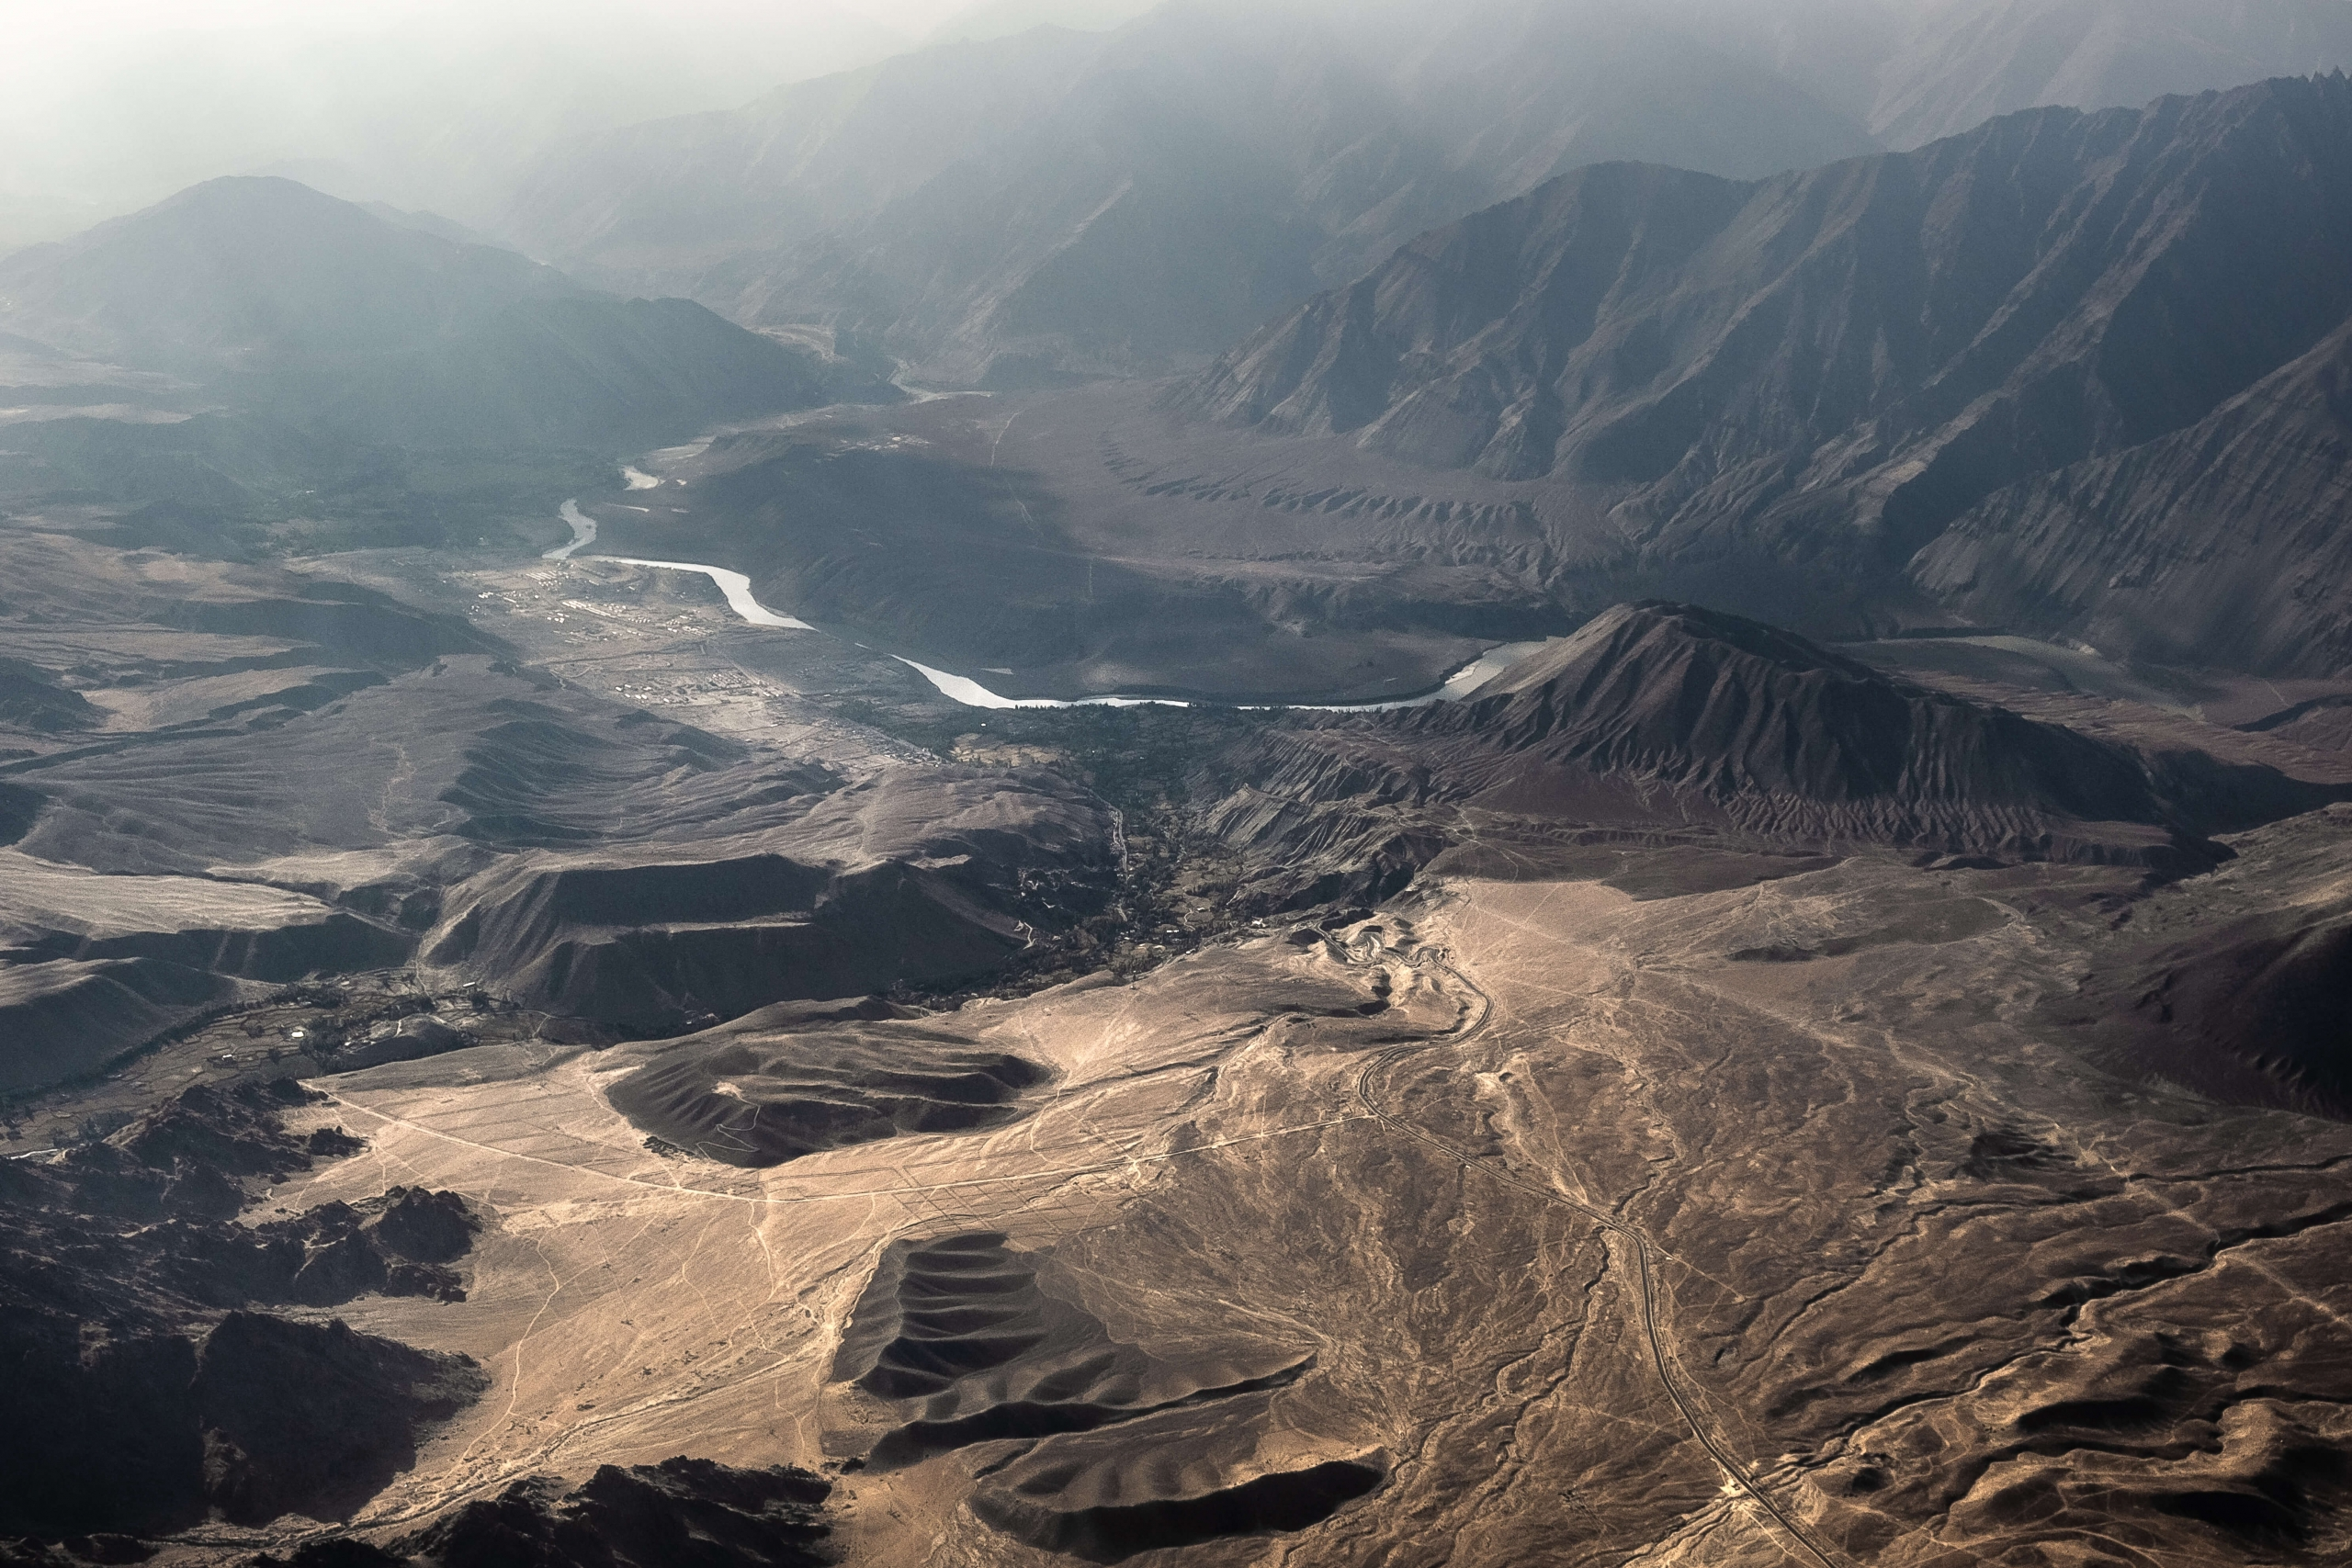 Ladakh from the air